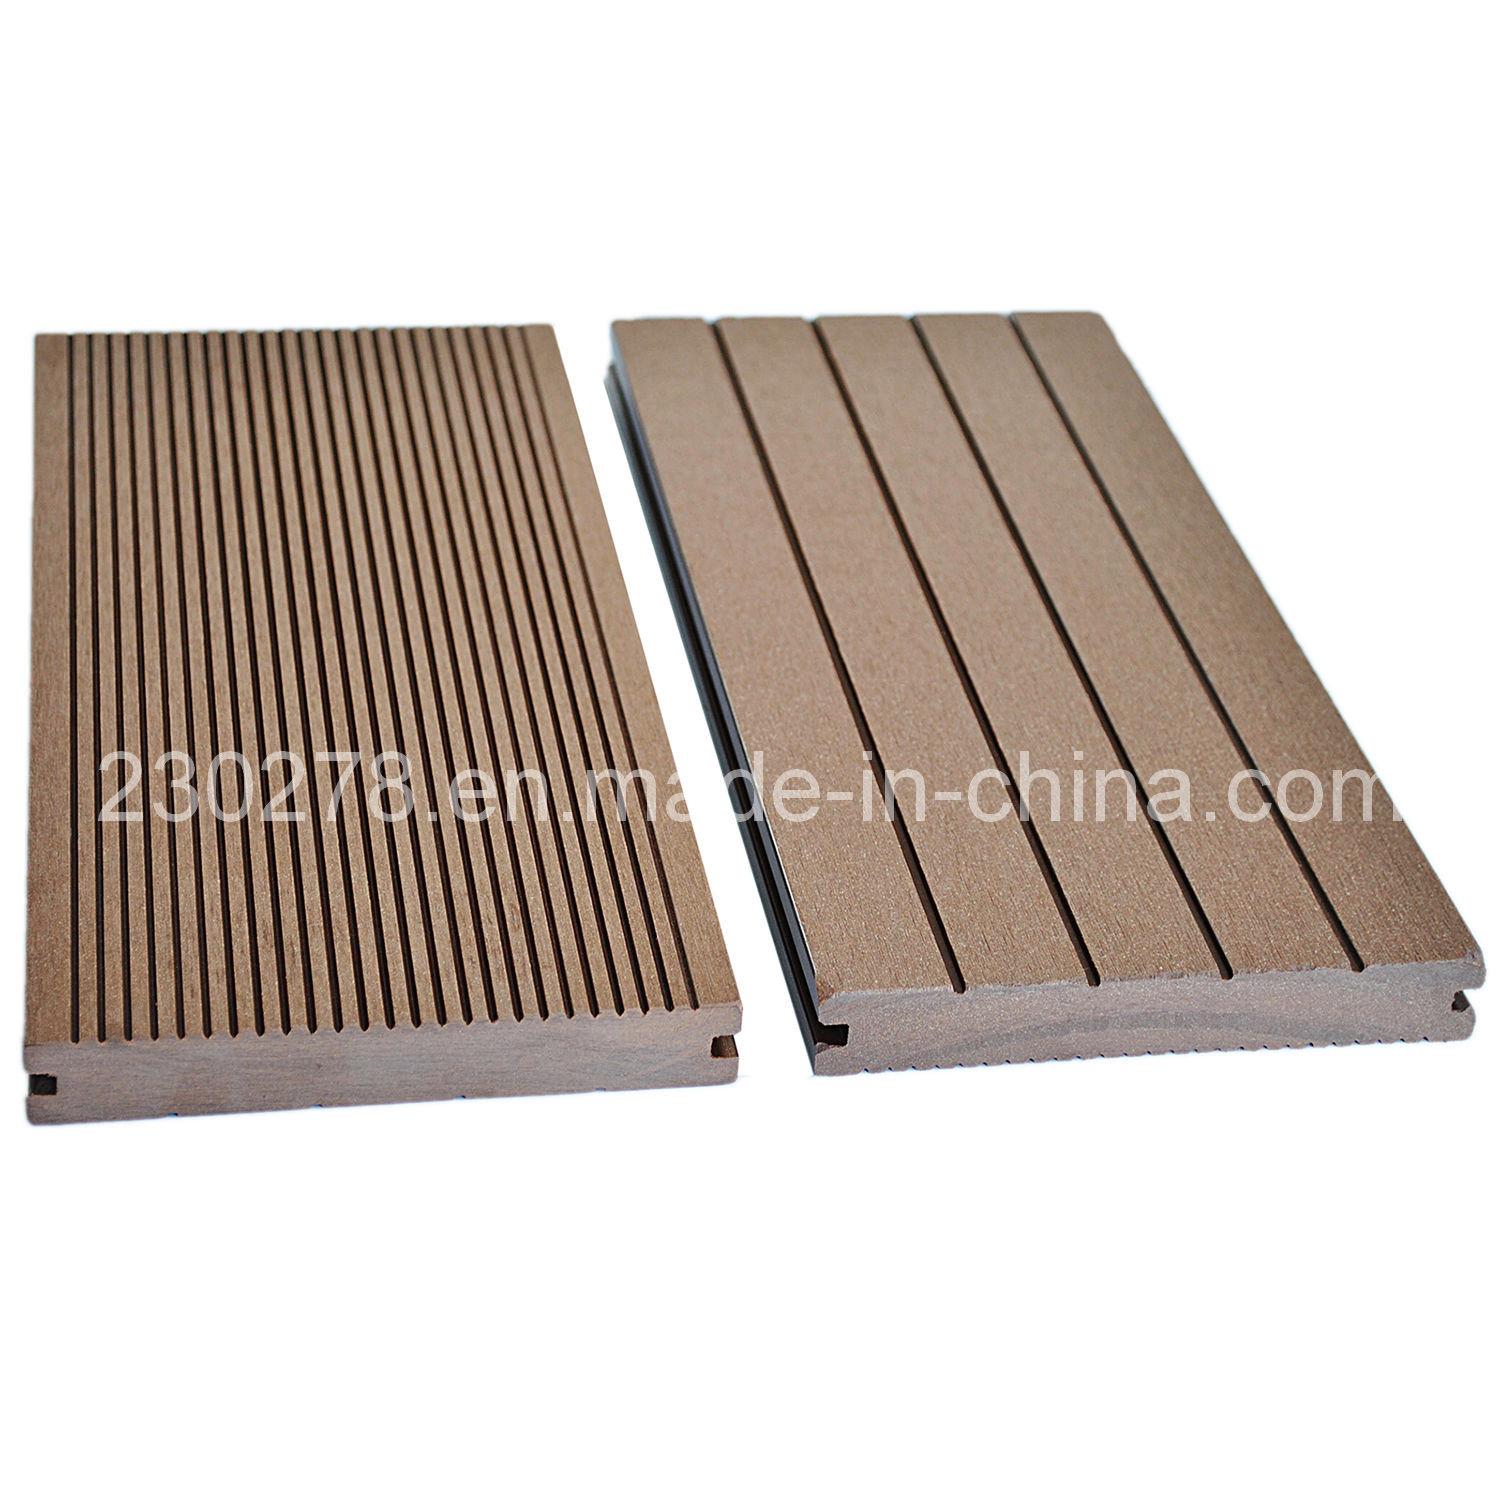 China 140 22 Fsc Commercial Solid Wpc Decking Board